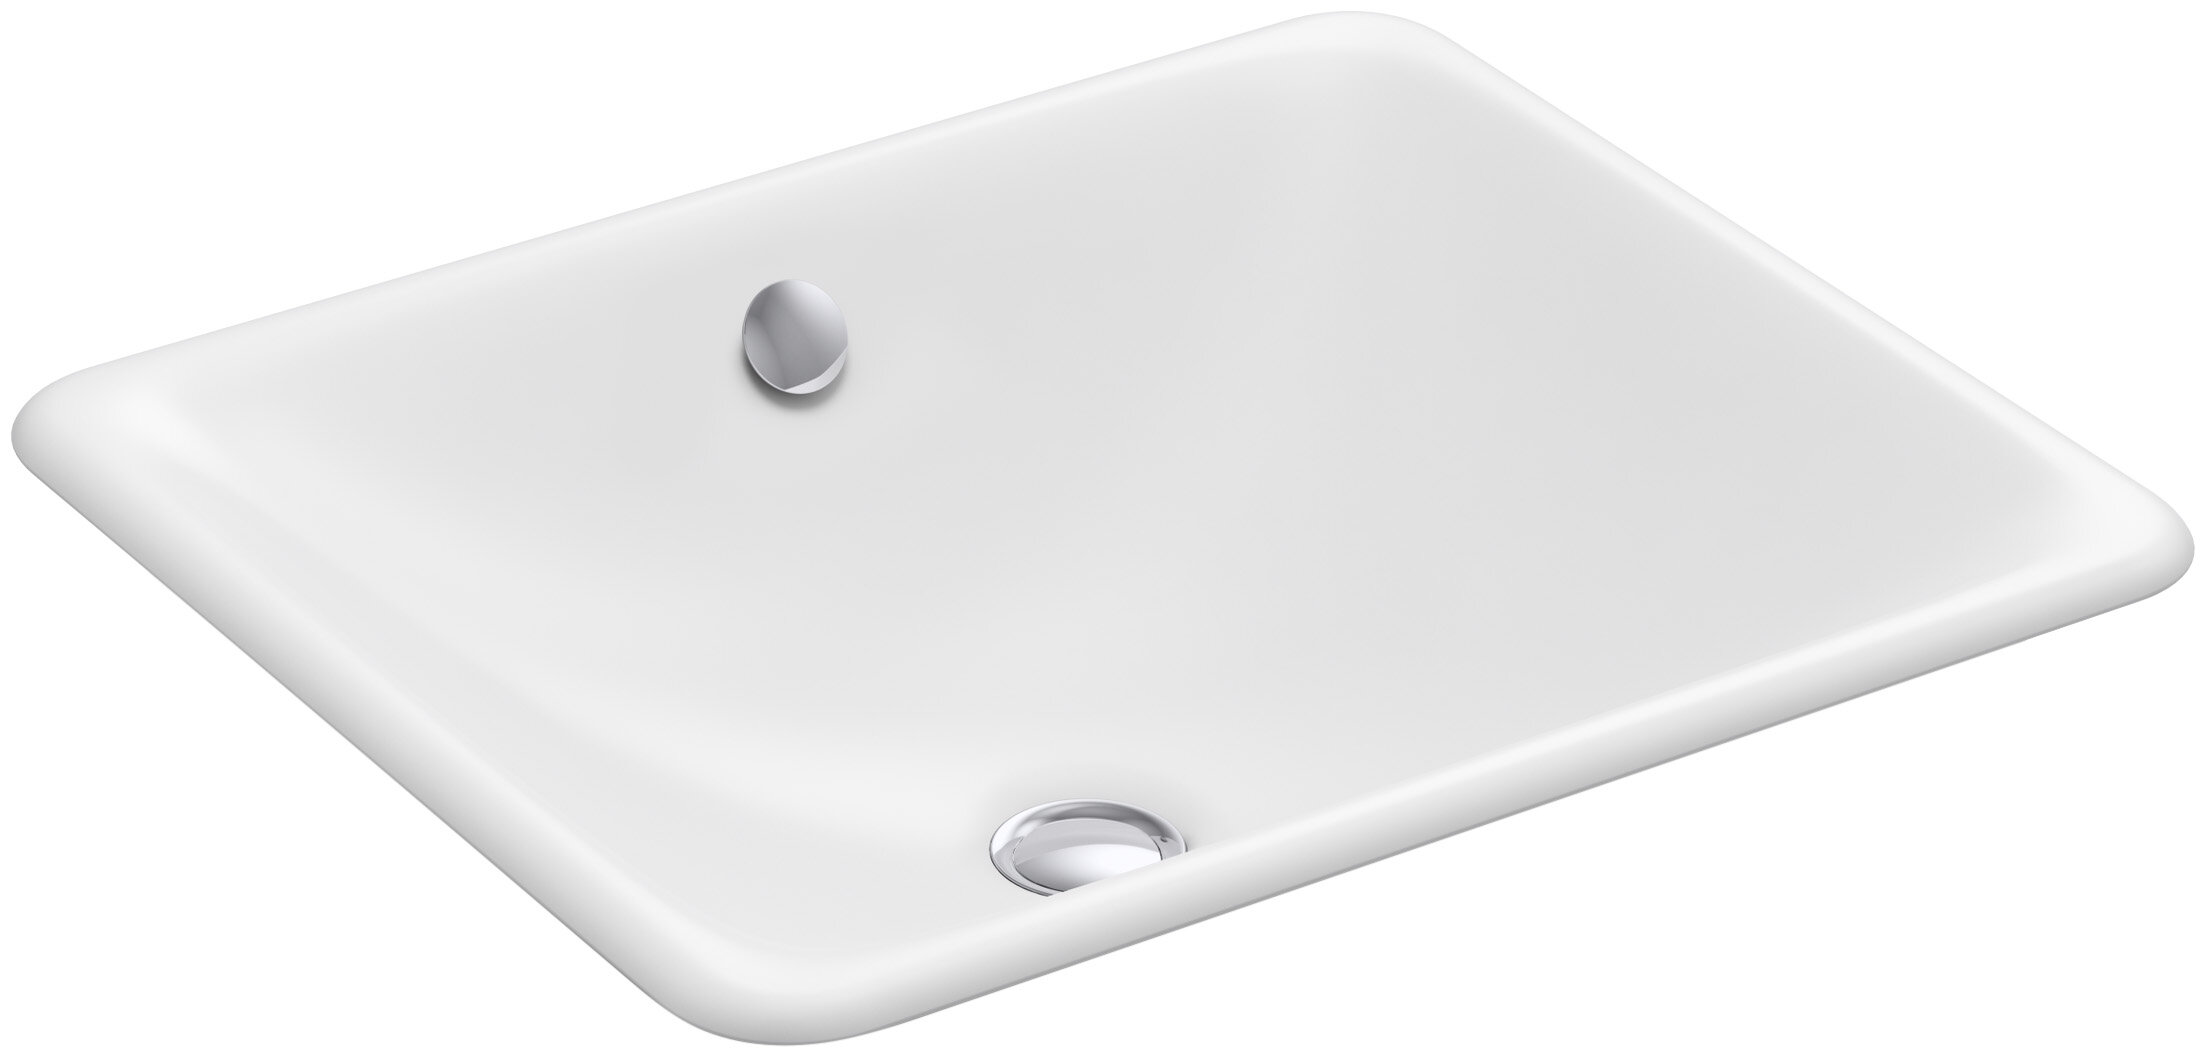 k rectangular product of kohler small ledges sinks sink undermount image pertaining how supply and attach home standard cookwithalocal to bathroom plumbing